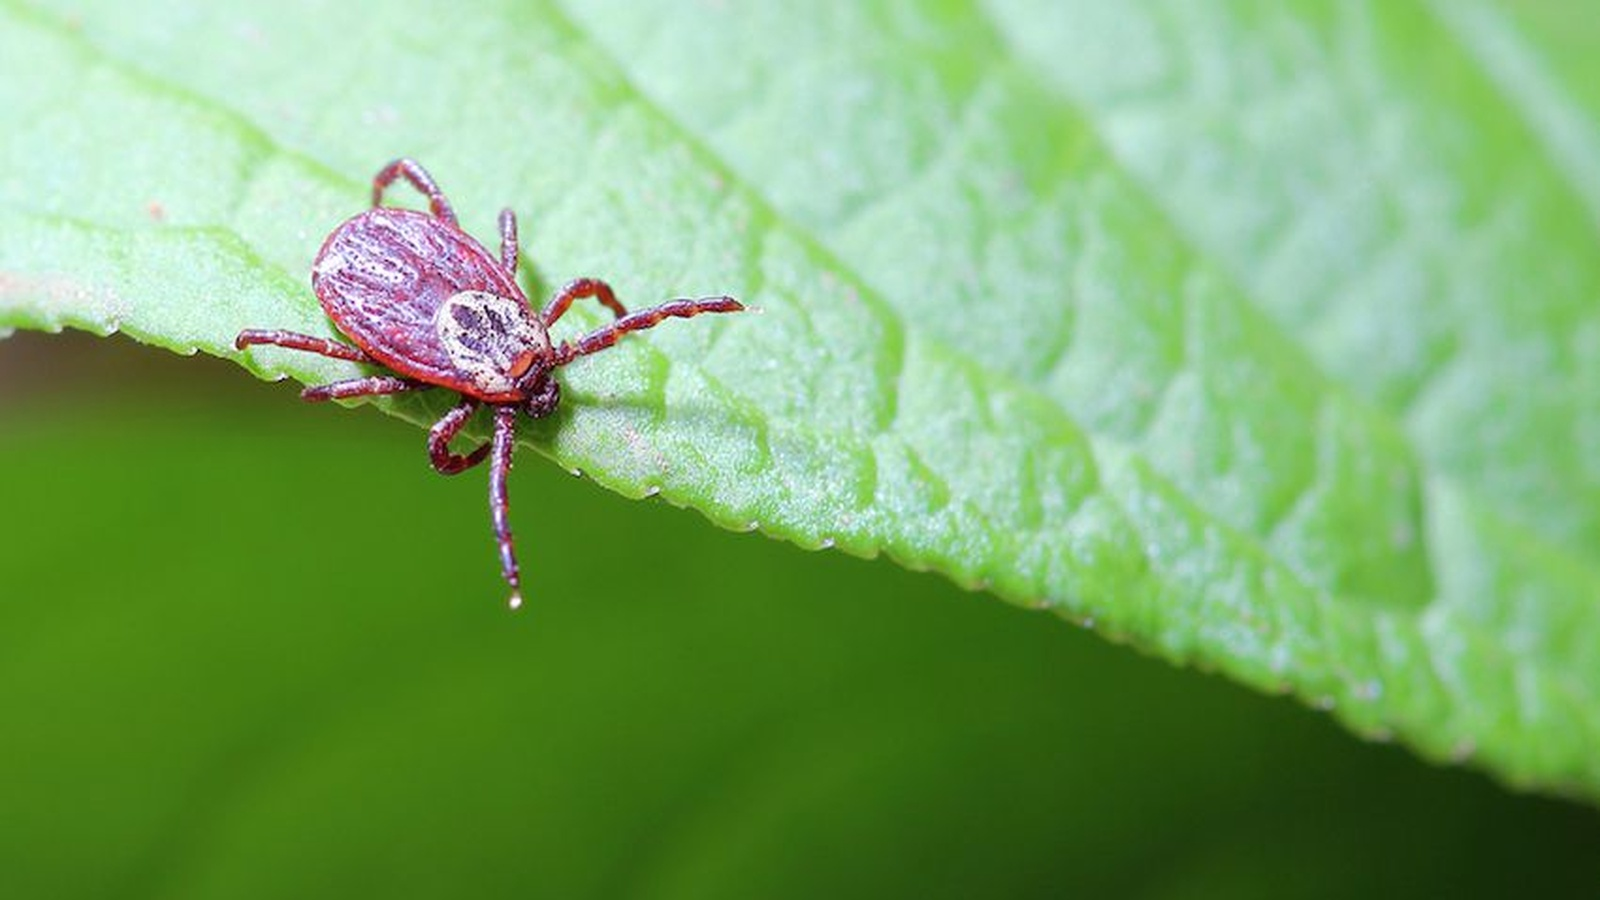 A New Cause Of Lyme Disease Discovered!